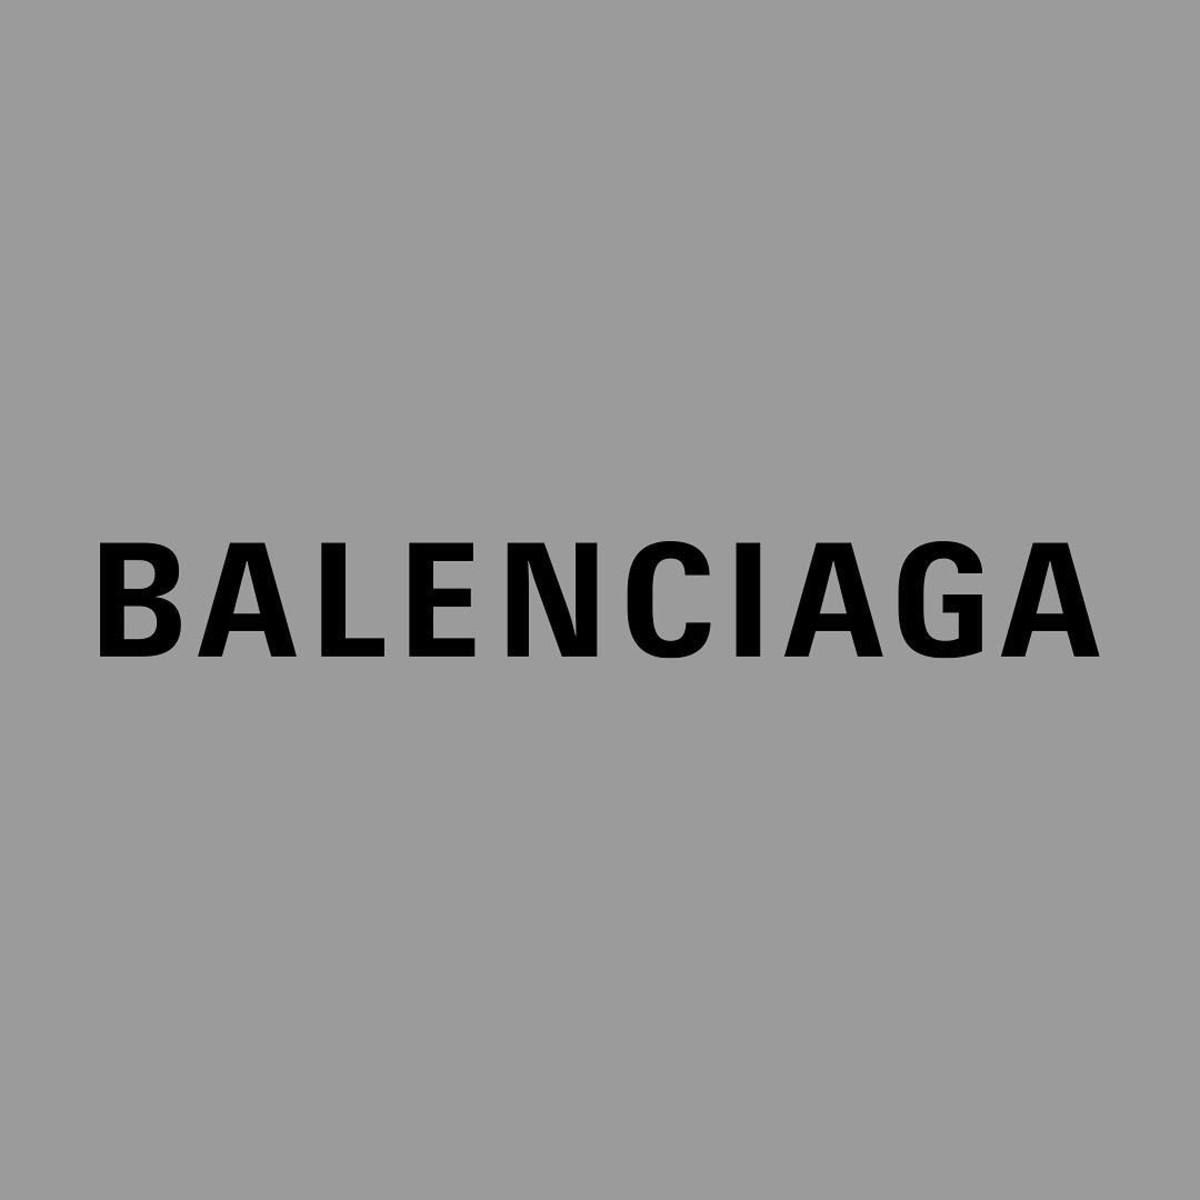 Balenciaga's new logo, created in-house and launched Sept. 29, 2017. Photo: @balenciaga/Instagram